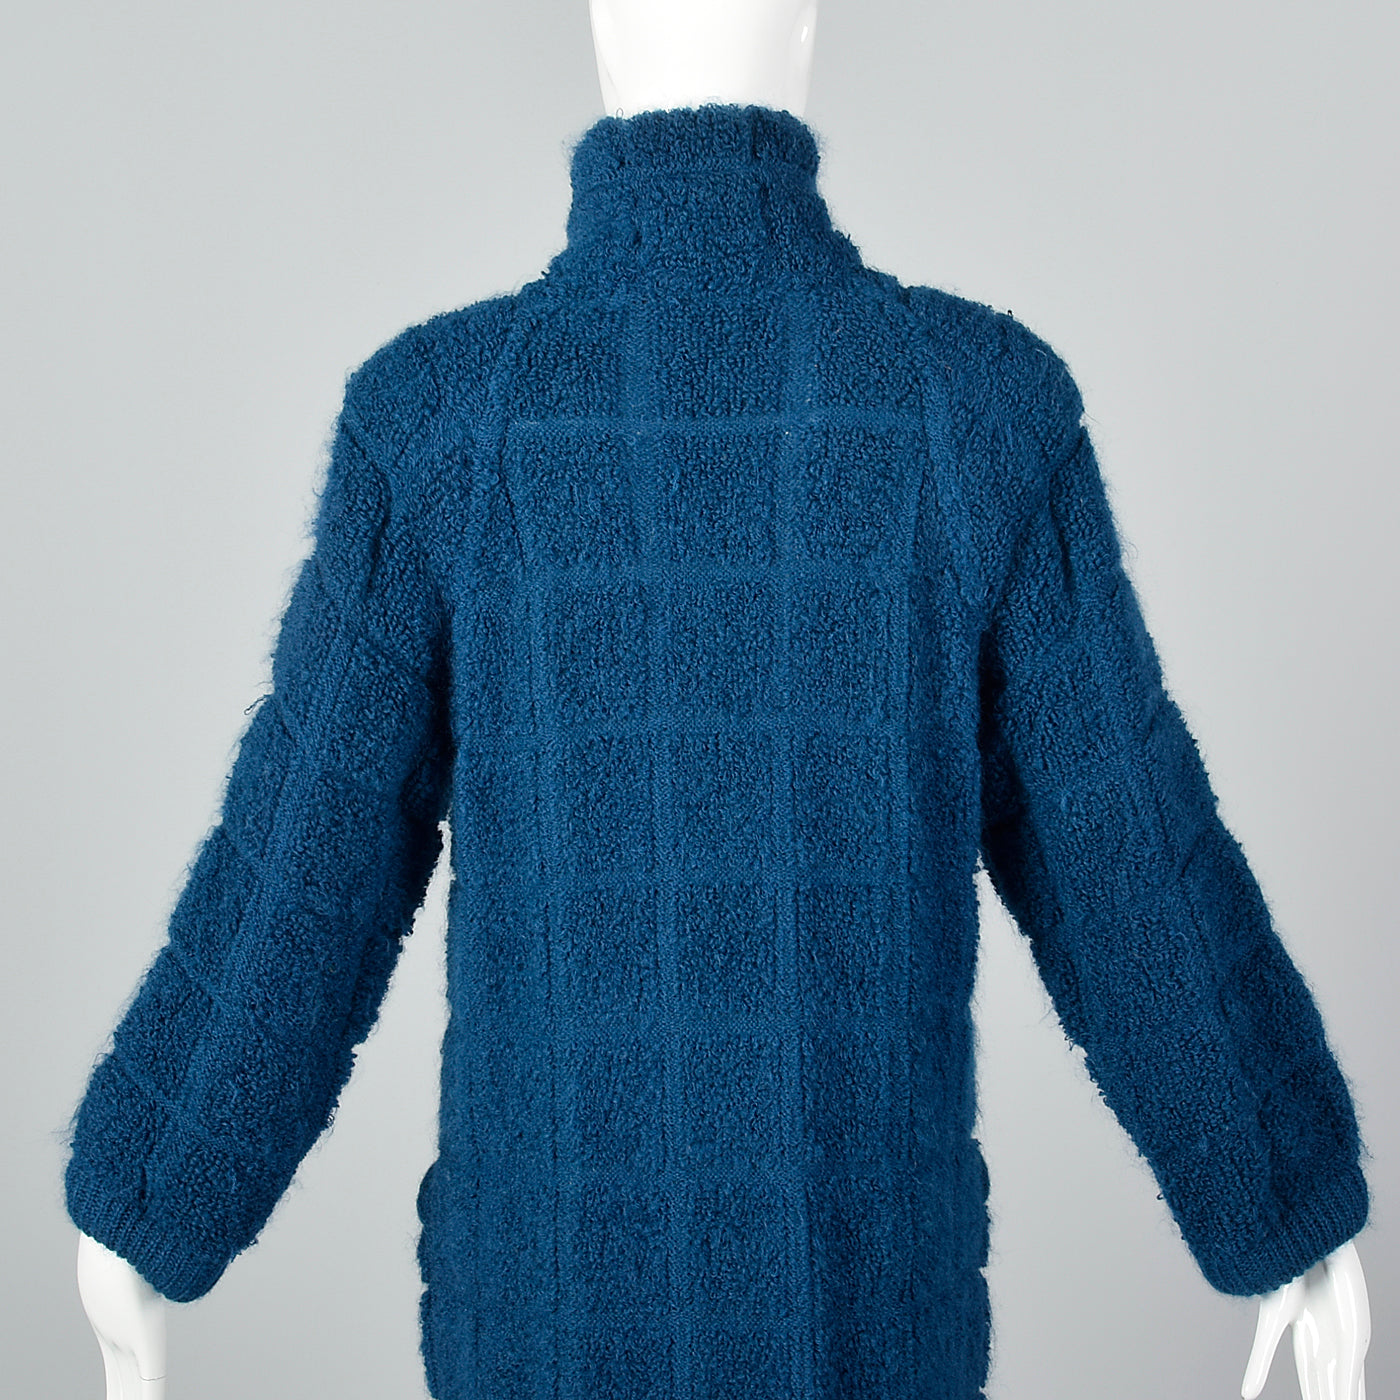 Soft & Cozy Missoni Teal Mohair Cardigan Sweater Coat